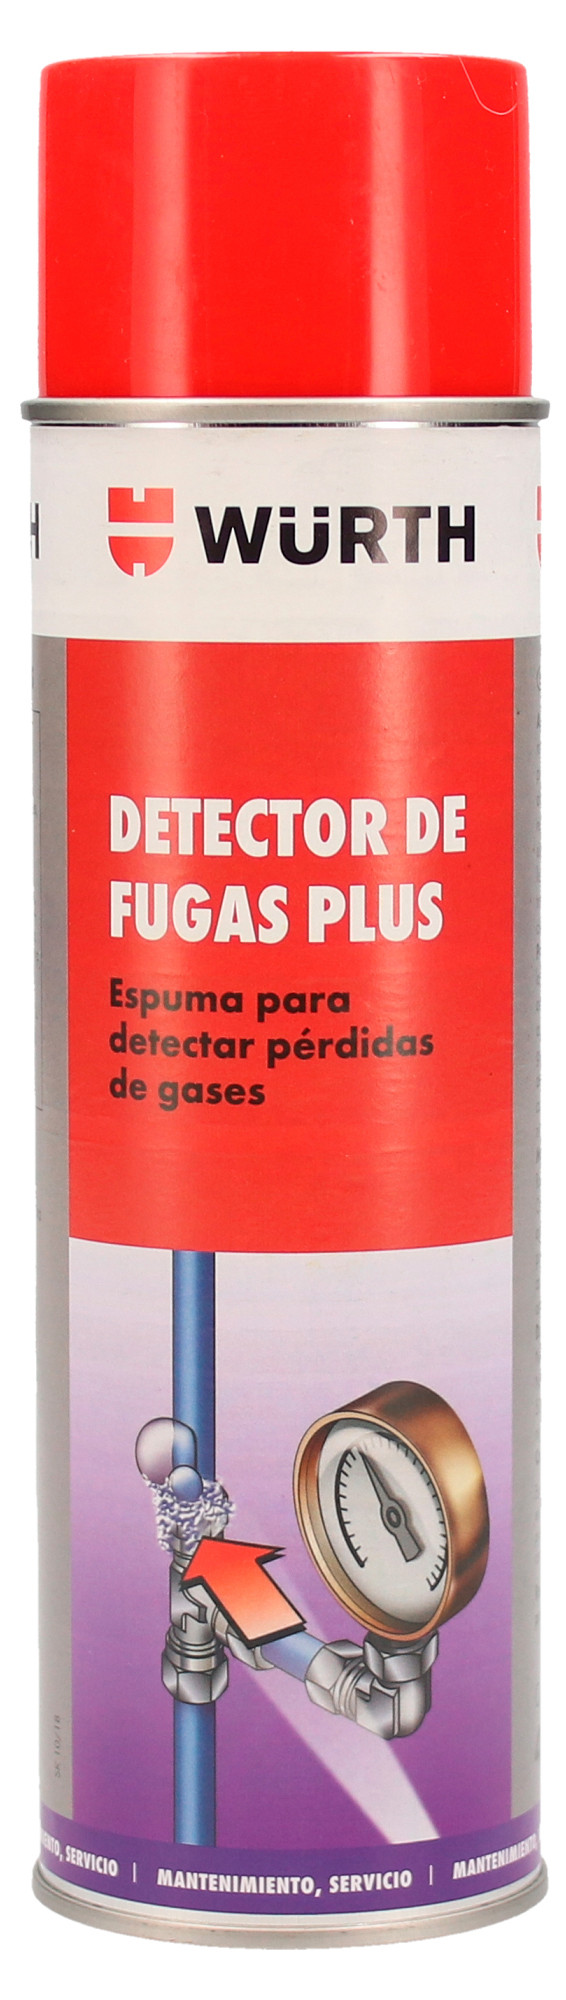 DETECTOR FUGAS PLUS, 400 ML